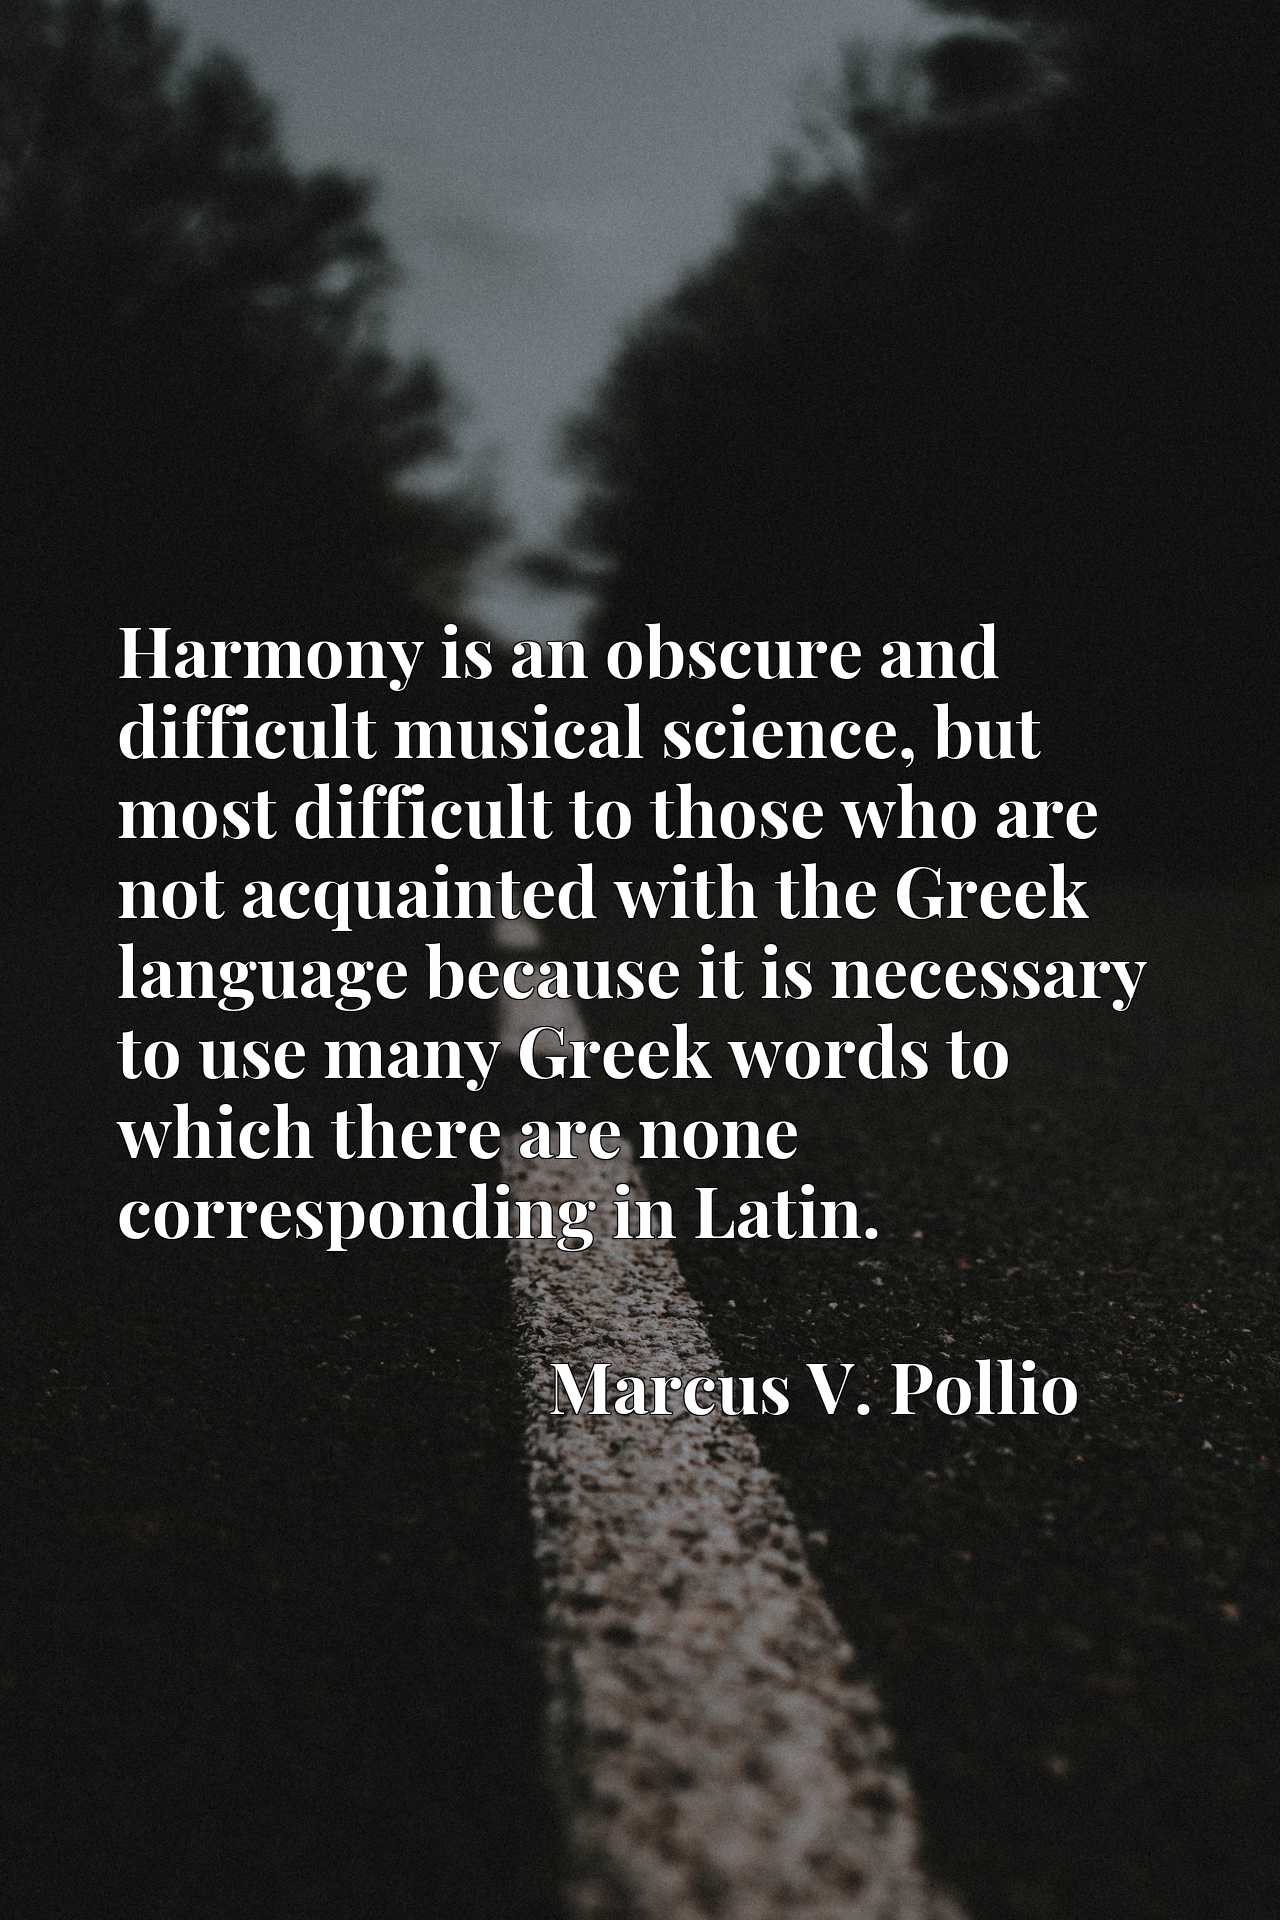 Harmony is an obscure and difficult musical science, but most difficult to those who are not acquainted with the Greek language because it is necessary to use many Greek words to which there are none corresponding in Latin.